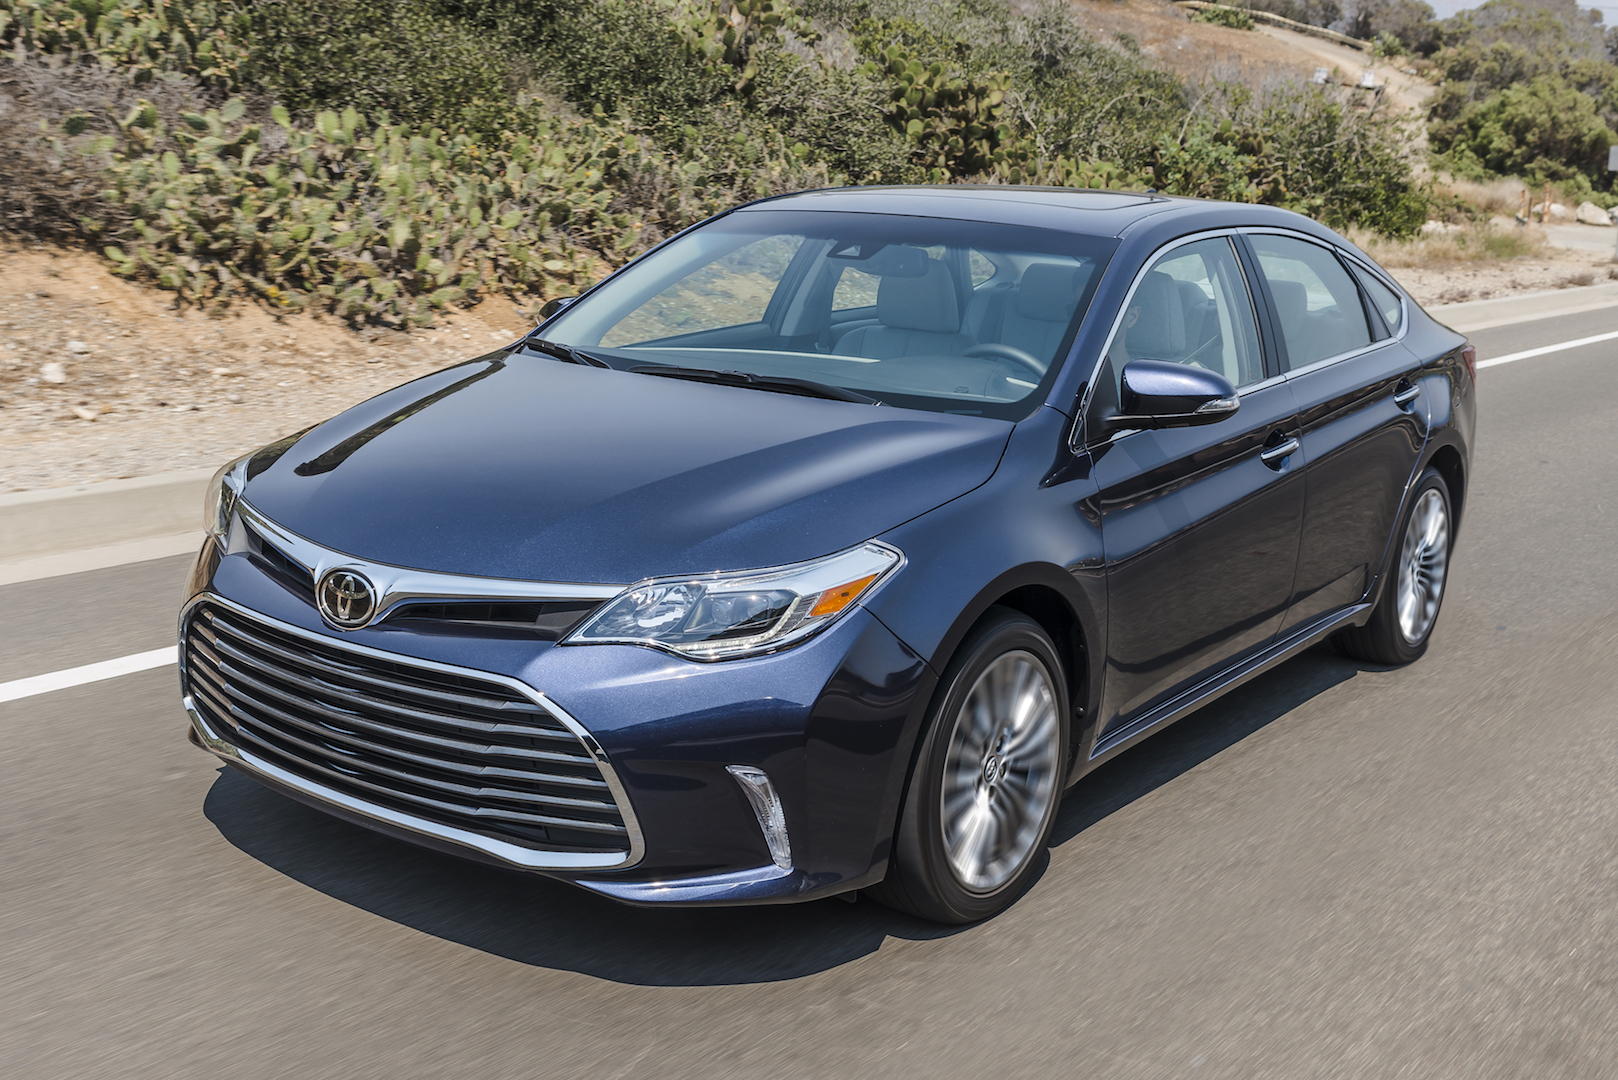 2017 Toyota Avalon Review, Ratings, Specs, Prices, and Photos - The Car Connection